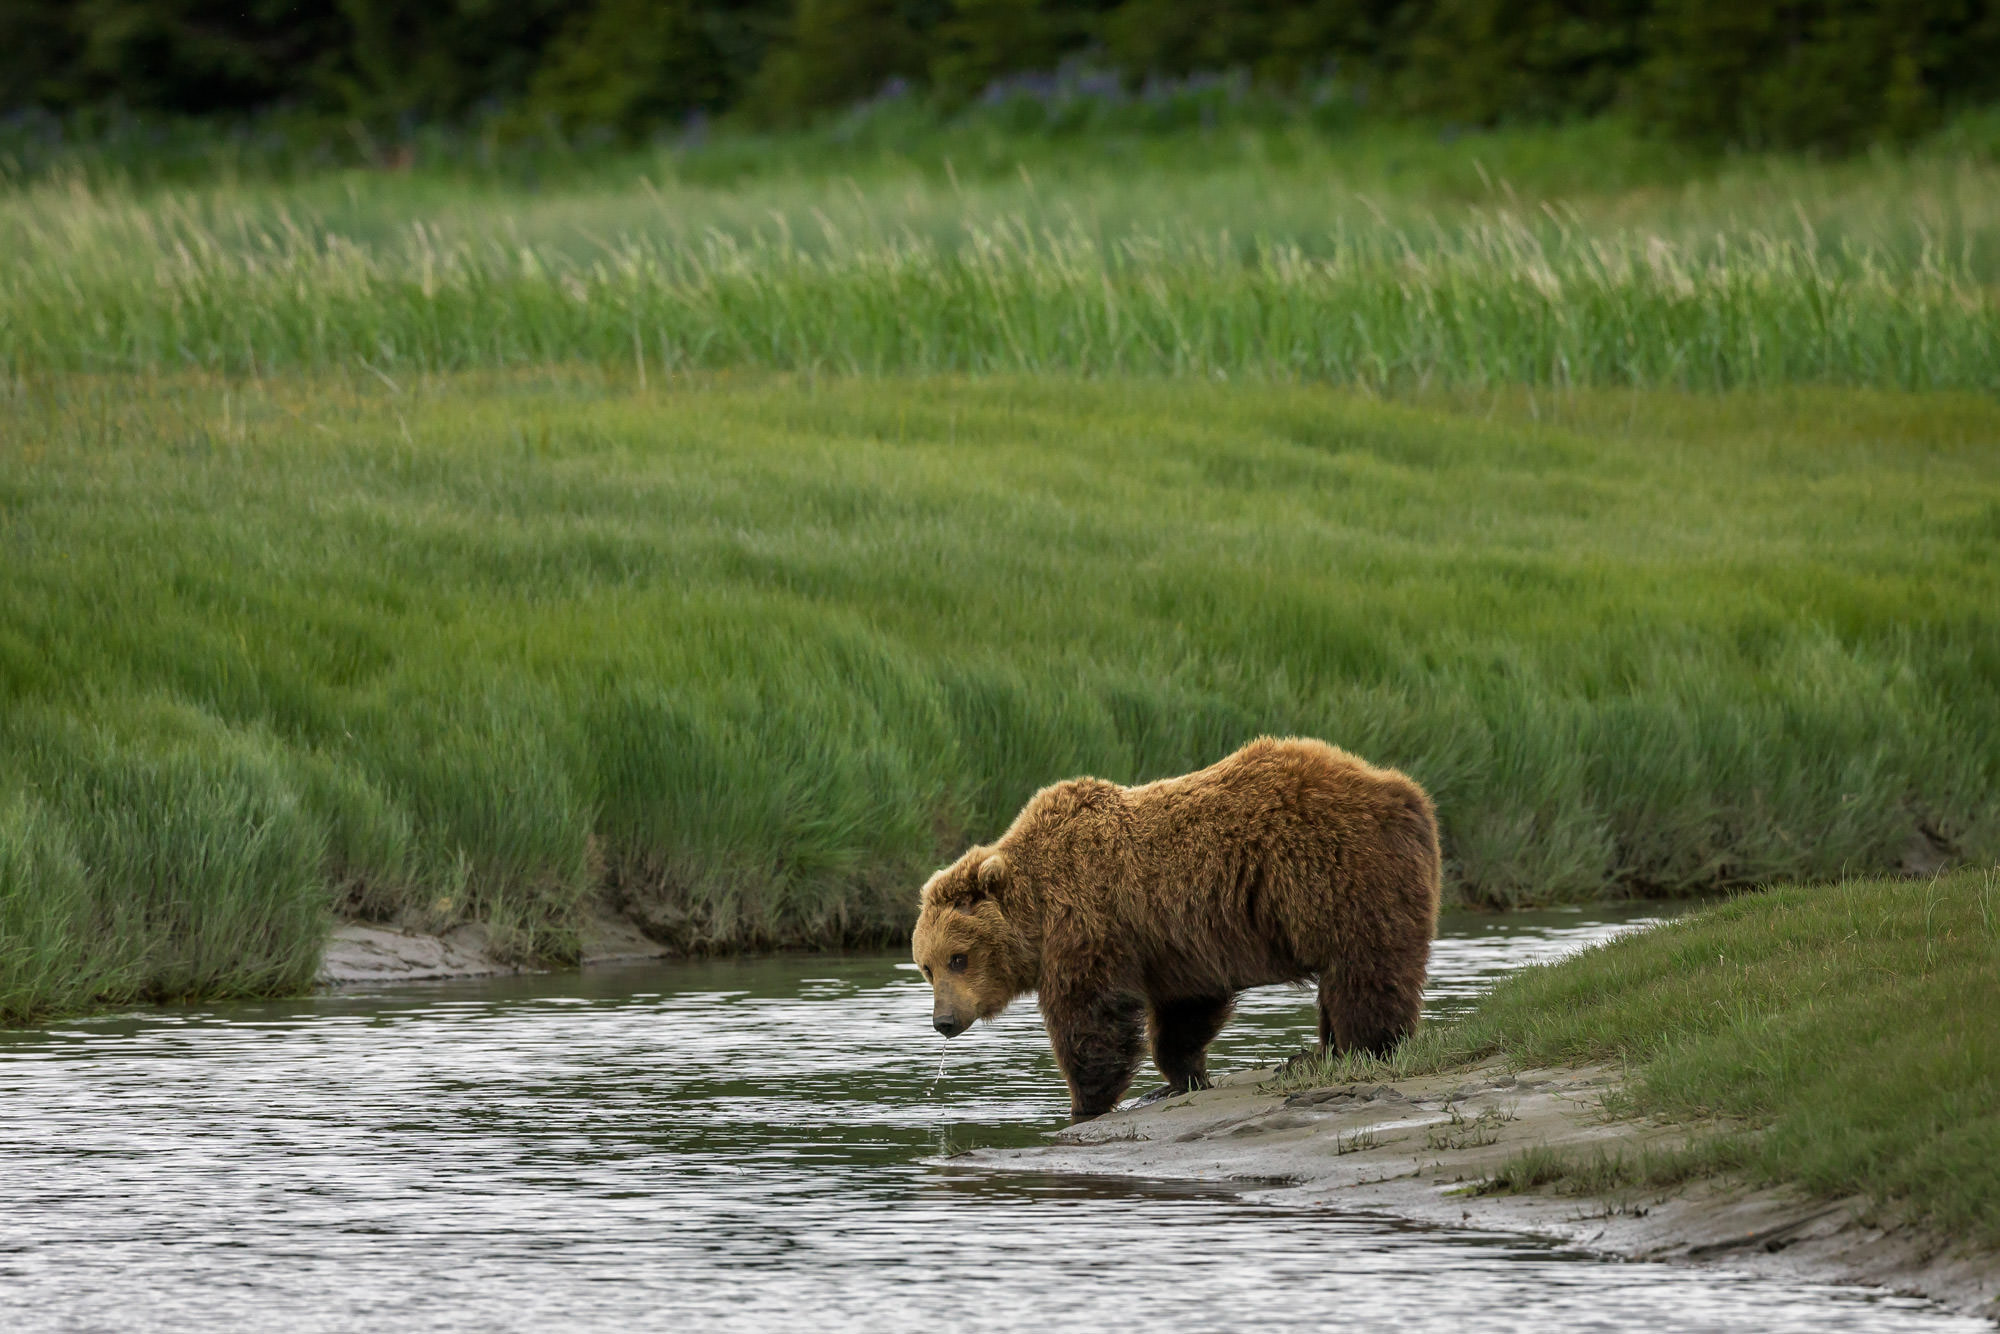 Bear, Brown Bear, Grizzly Bear, Alaska, photo